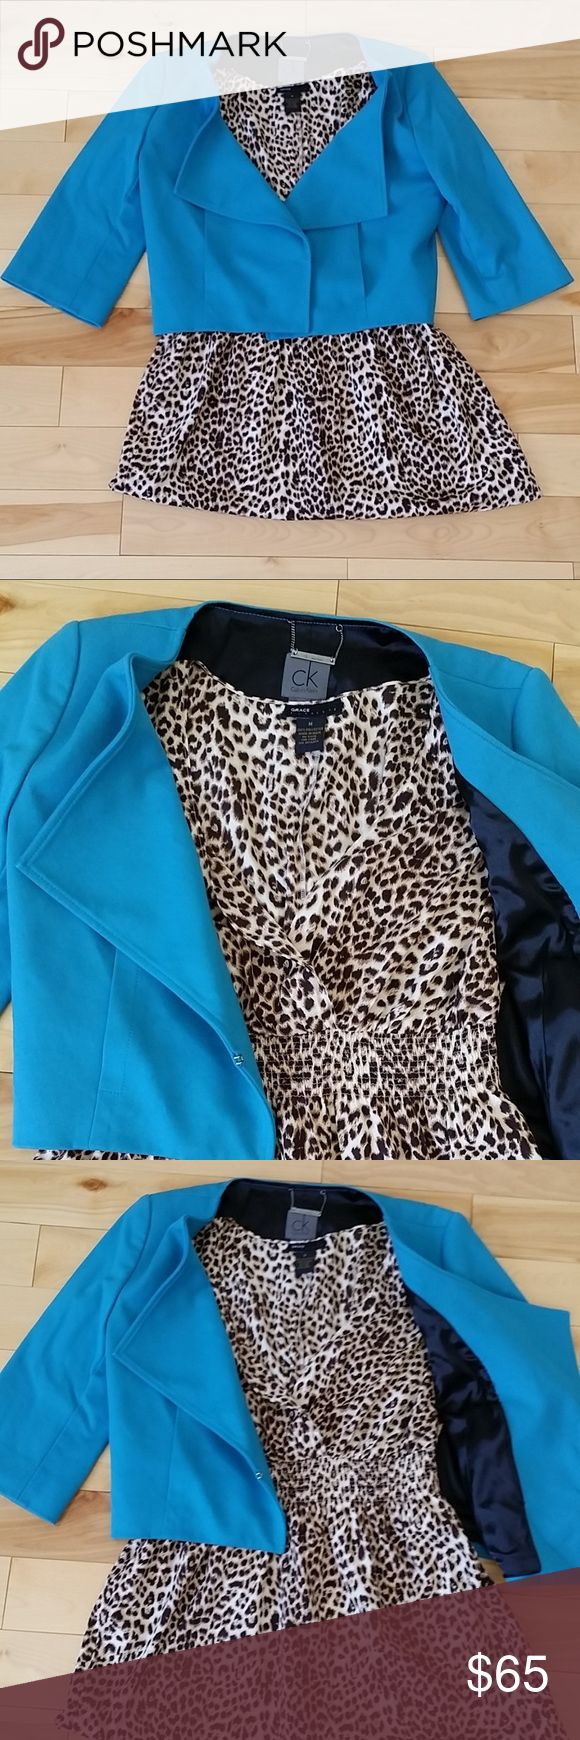 CALVIN KLEIN BLUE BLAZER WOMENS Bundle outfit.  Calvin Klein blazer jacket in size XS and leopard blouse.   The leopard blouse - Grace elements is in size M.  Both are in great condition. Calvin Klein Jackets & Coats Blazers